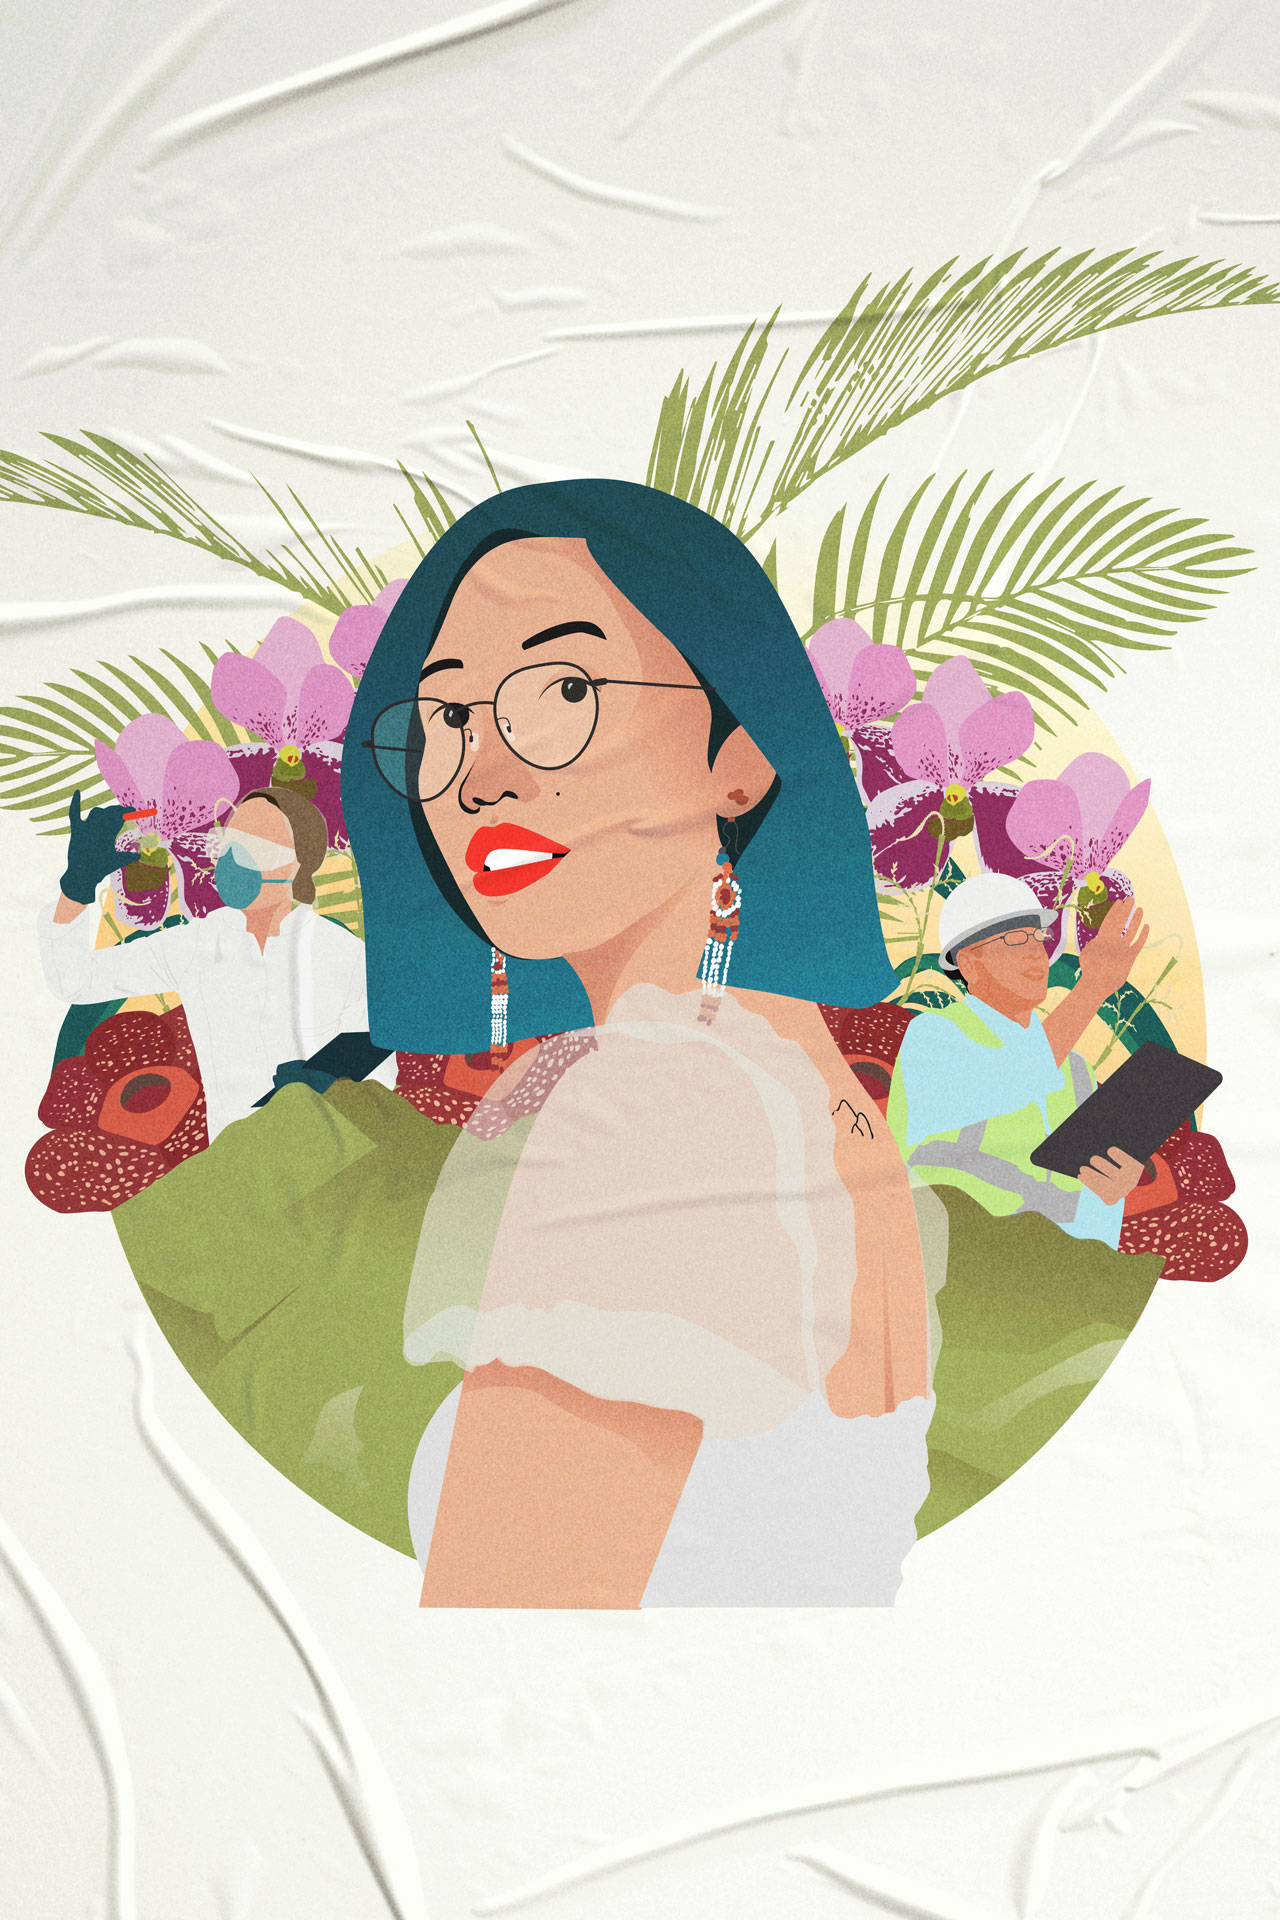 Mitzi Jonelle TanLead Convener, Youth Advocates for Climate Action Philippines, illustration by Isabela Ferrer